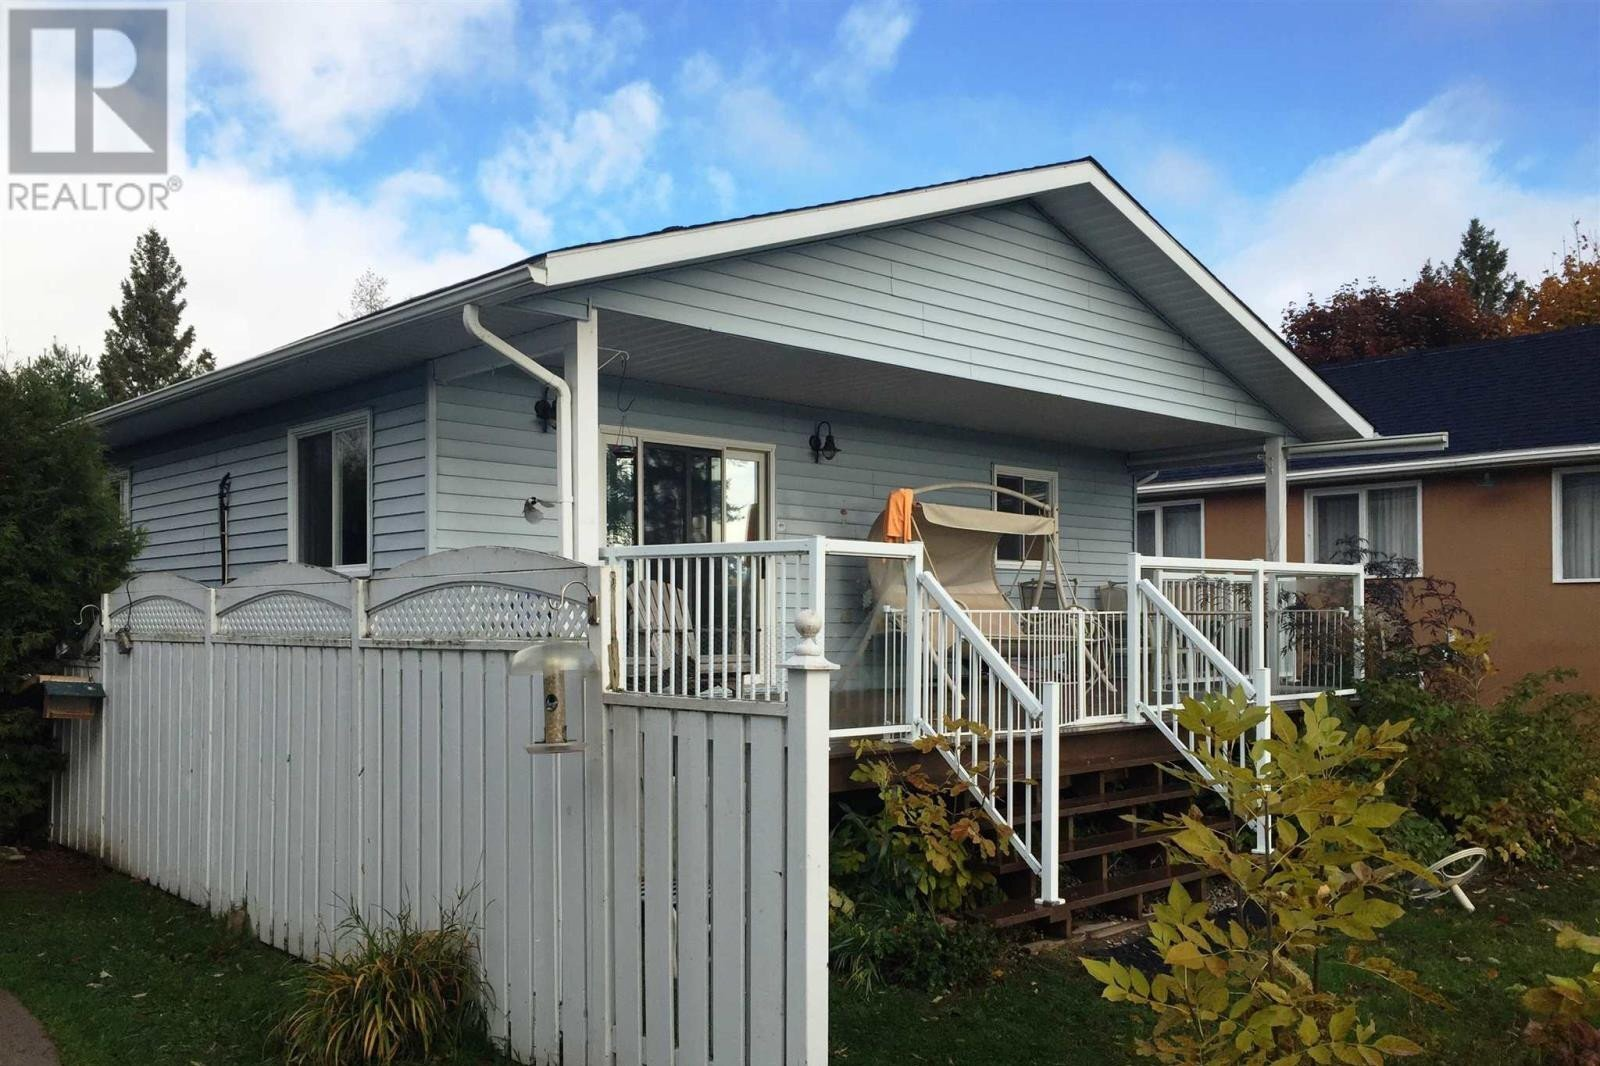 House for sale at 475 River Rd Sault Ste. Marie Ontario - MLS: SM130088